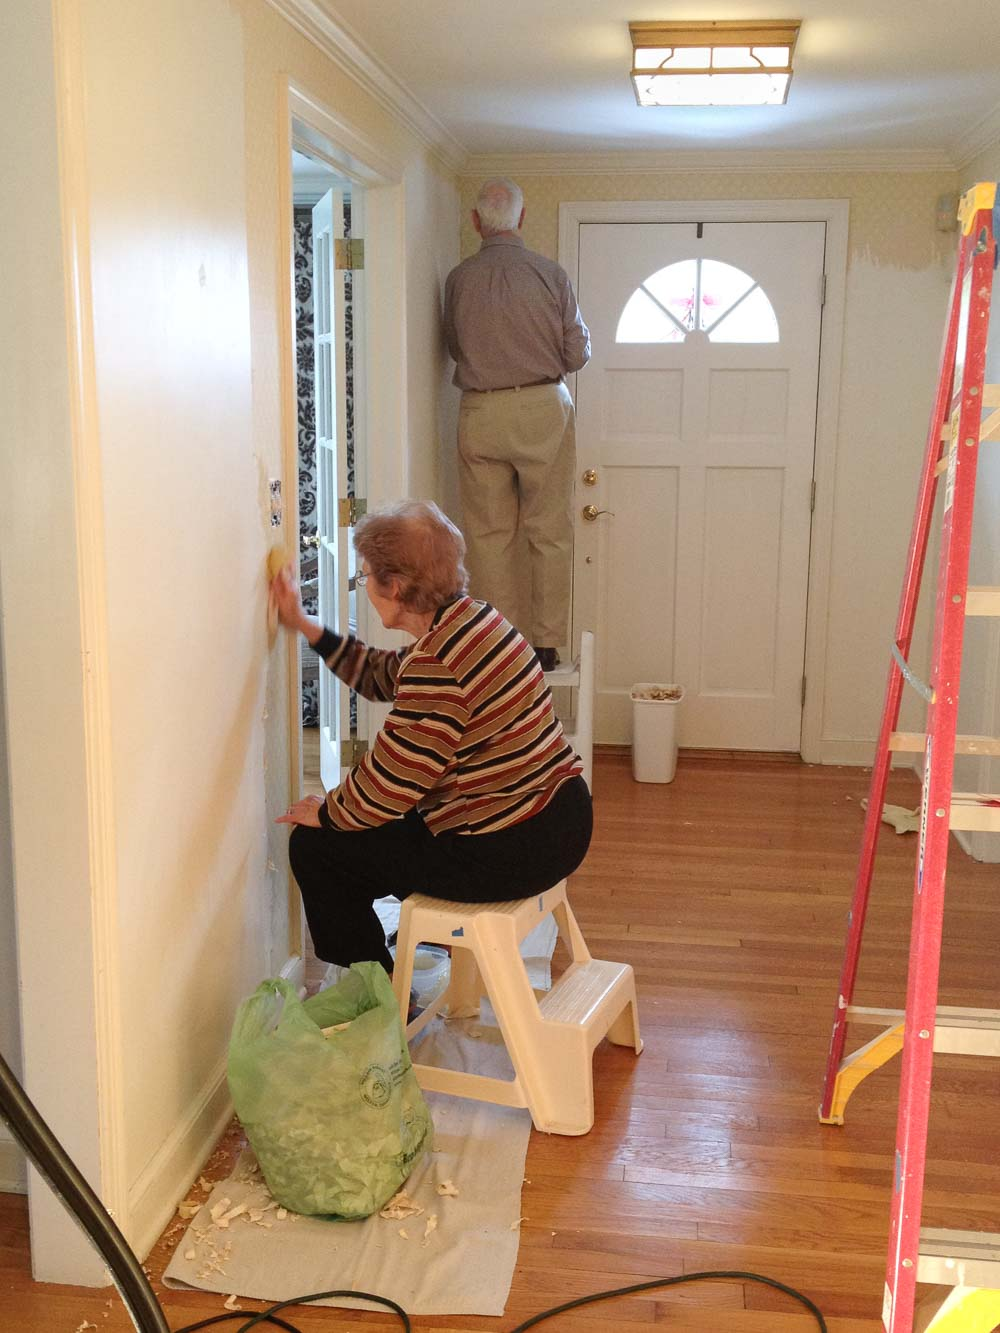 Removing wallpaper in our entryway